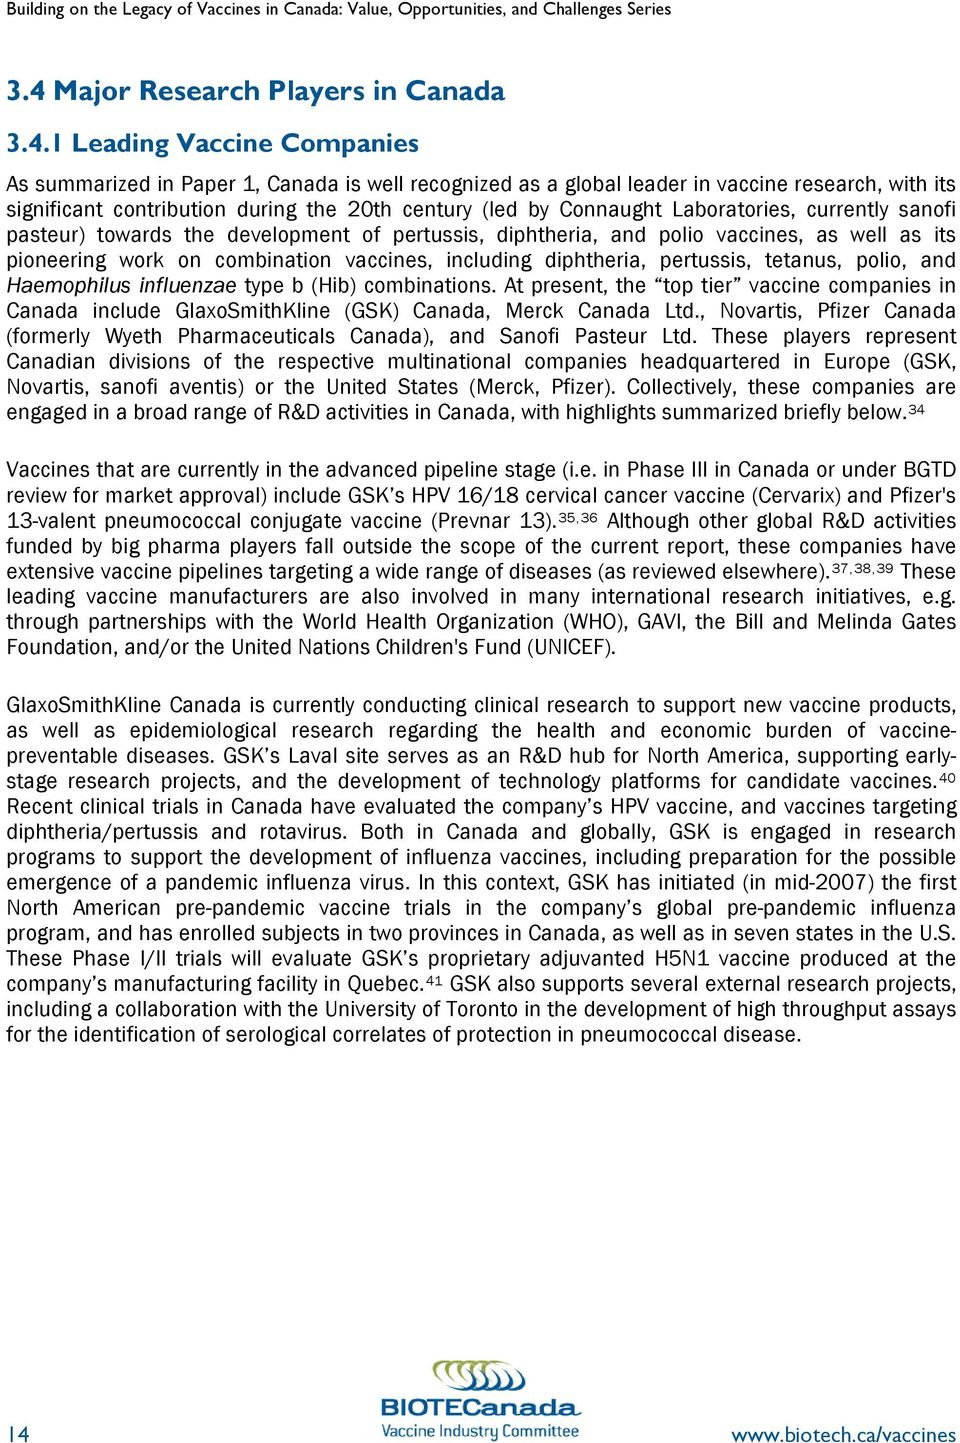 1 Leading Vaccine Companies As summarized in Paper 1, Canada is well recognized as a global leader in vaccine research, with its significant contribution during the 20th century (led by Connaught